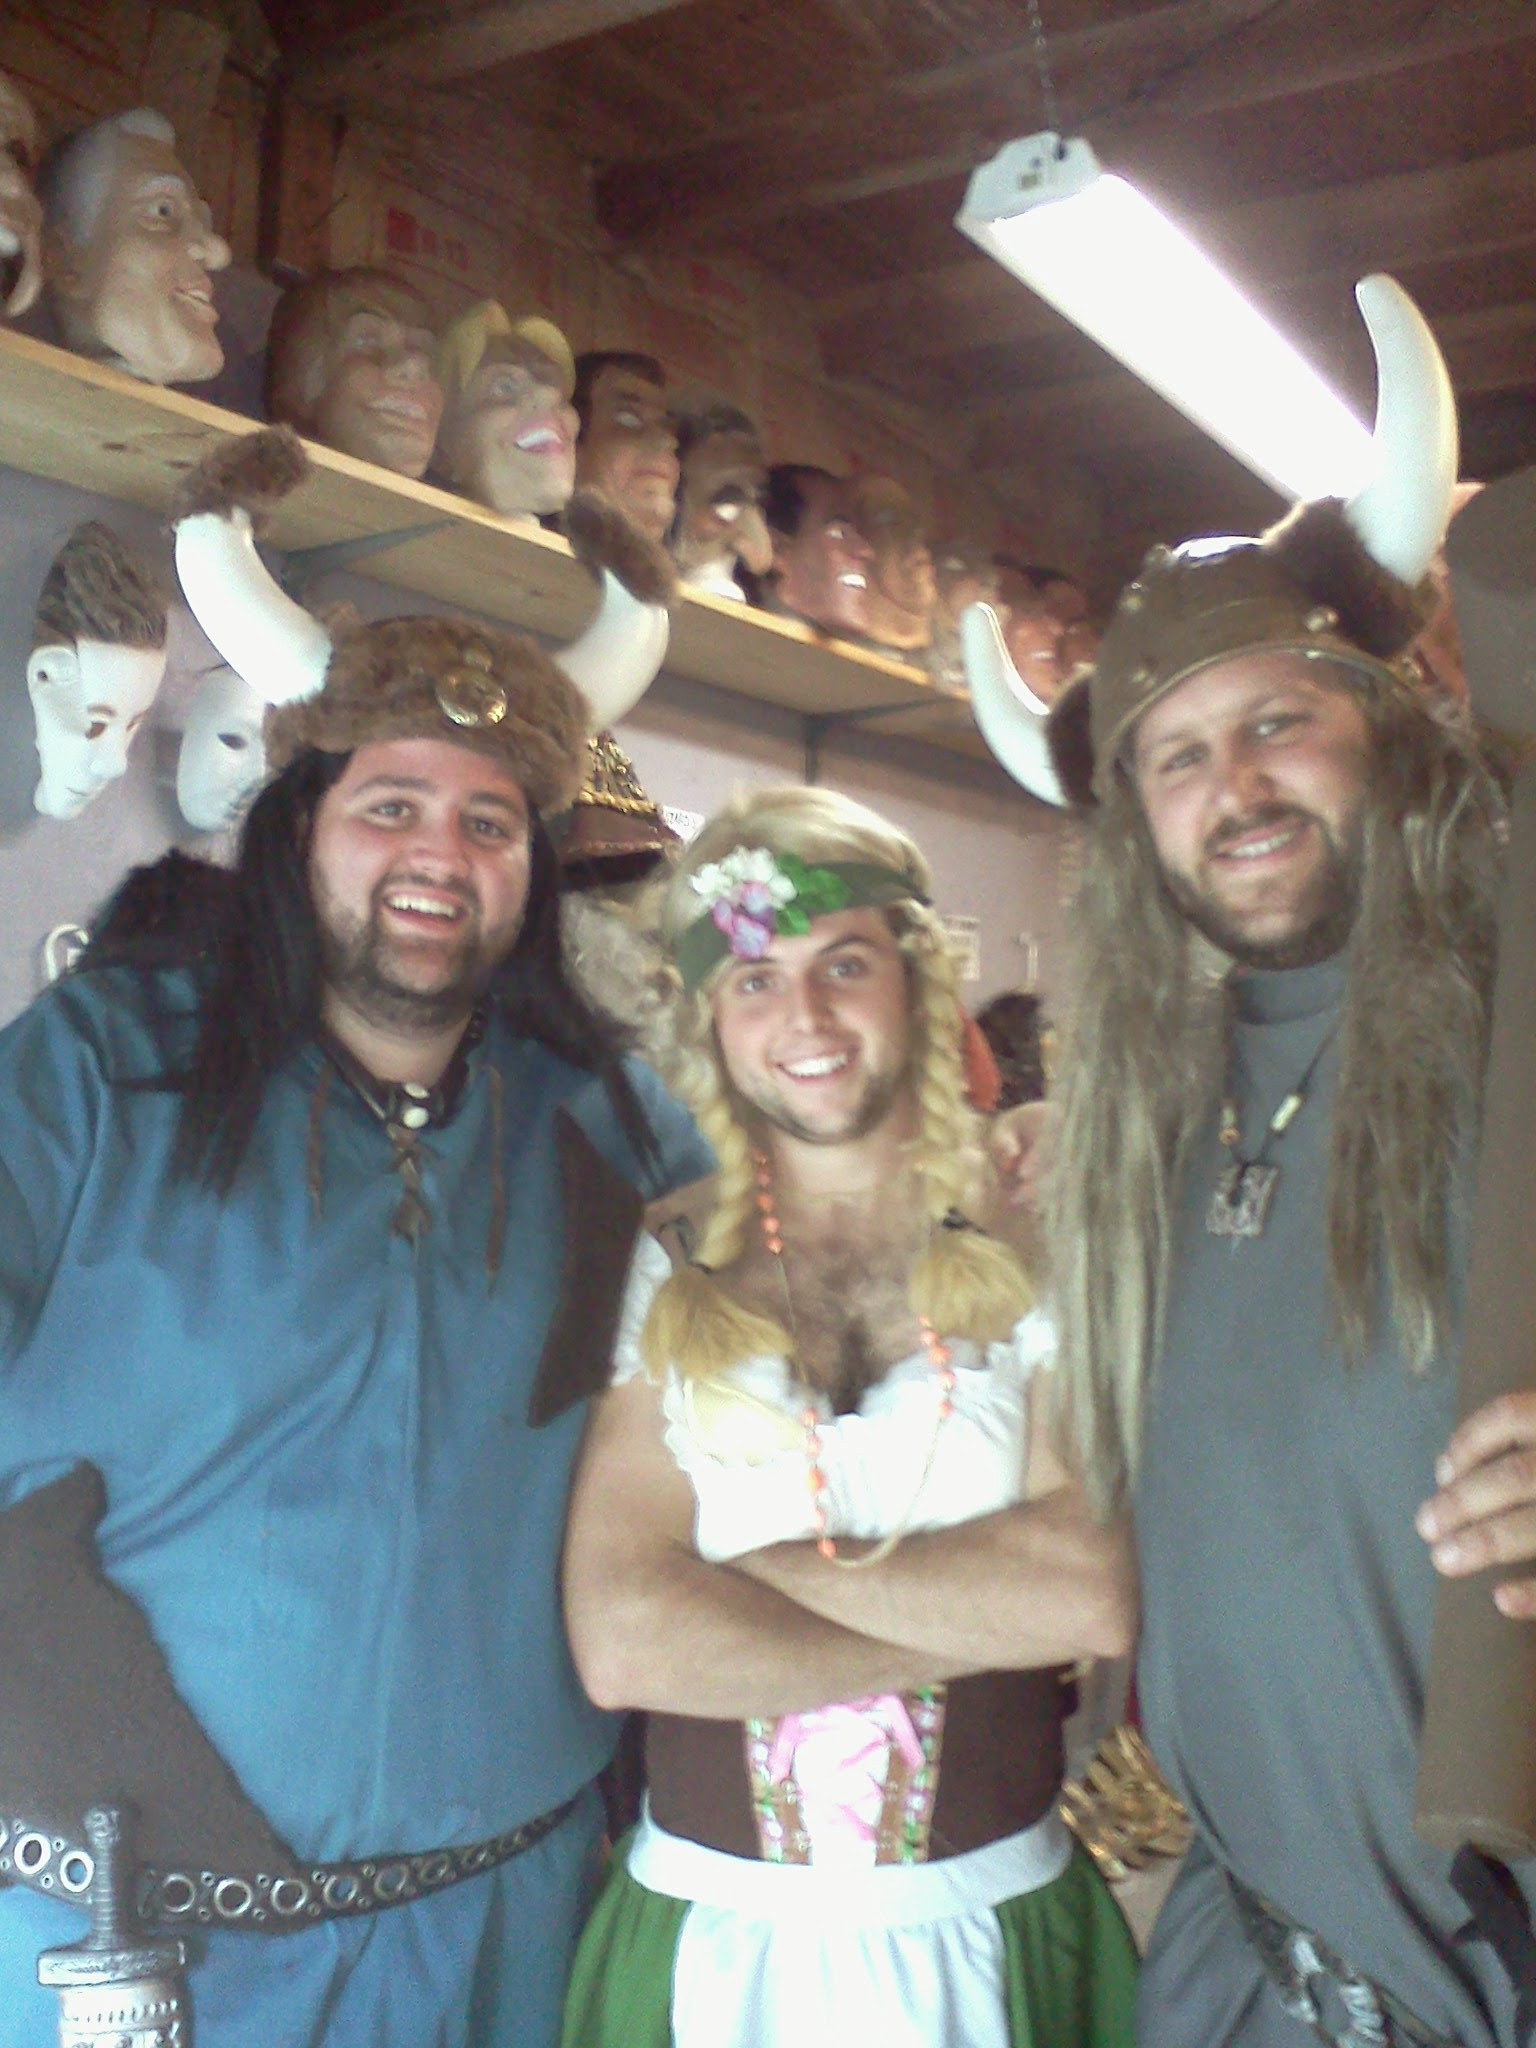 vikings and bar maid